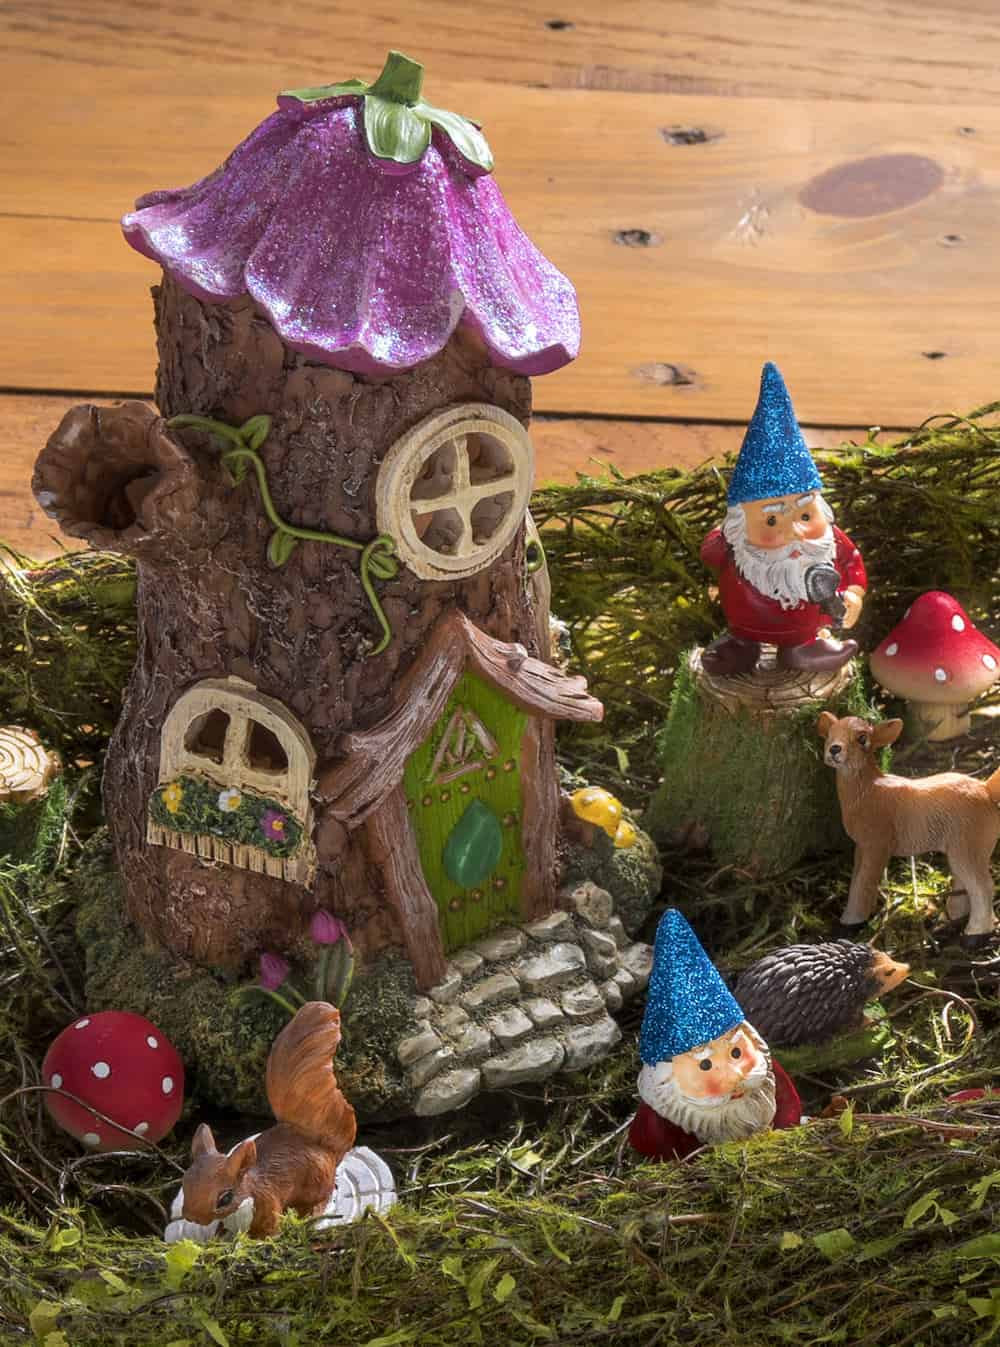 Precious Woodland Create A Desk Fairy Garden Orforest Make A Magical Desk Fairy Garden Mod Podge Rocks Fairy Garden S To Color Fairy Garden S On Pinterest garden Fairy Garden Pictures